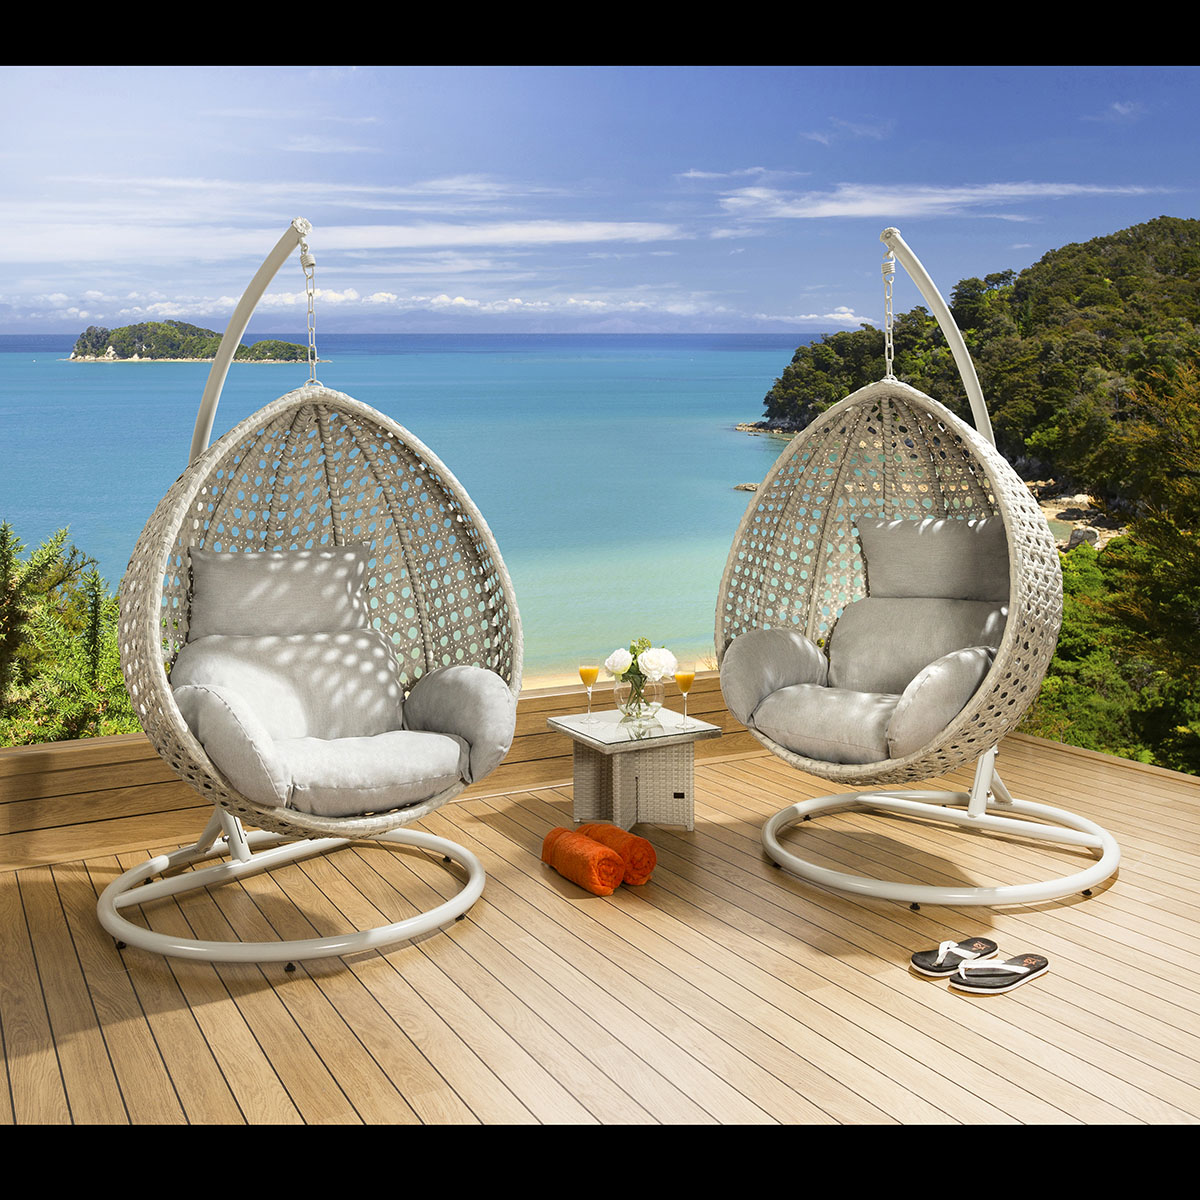 Hanging Egg Pod Chair Luxury Outdoor Garden Suspended Egg Pod Cocoon Chair Stone